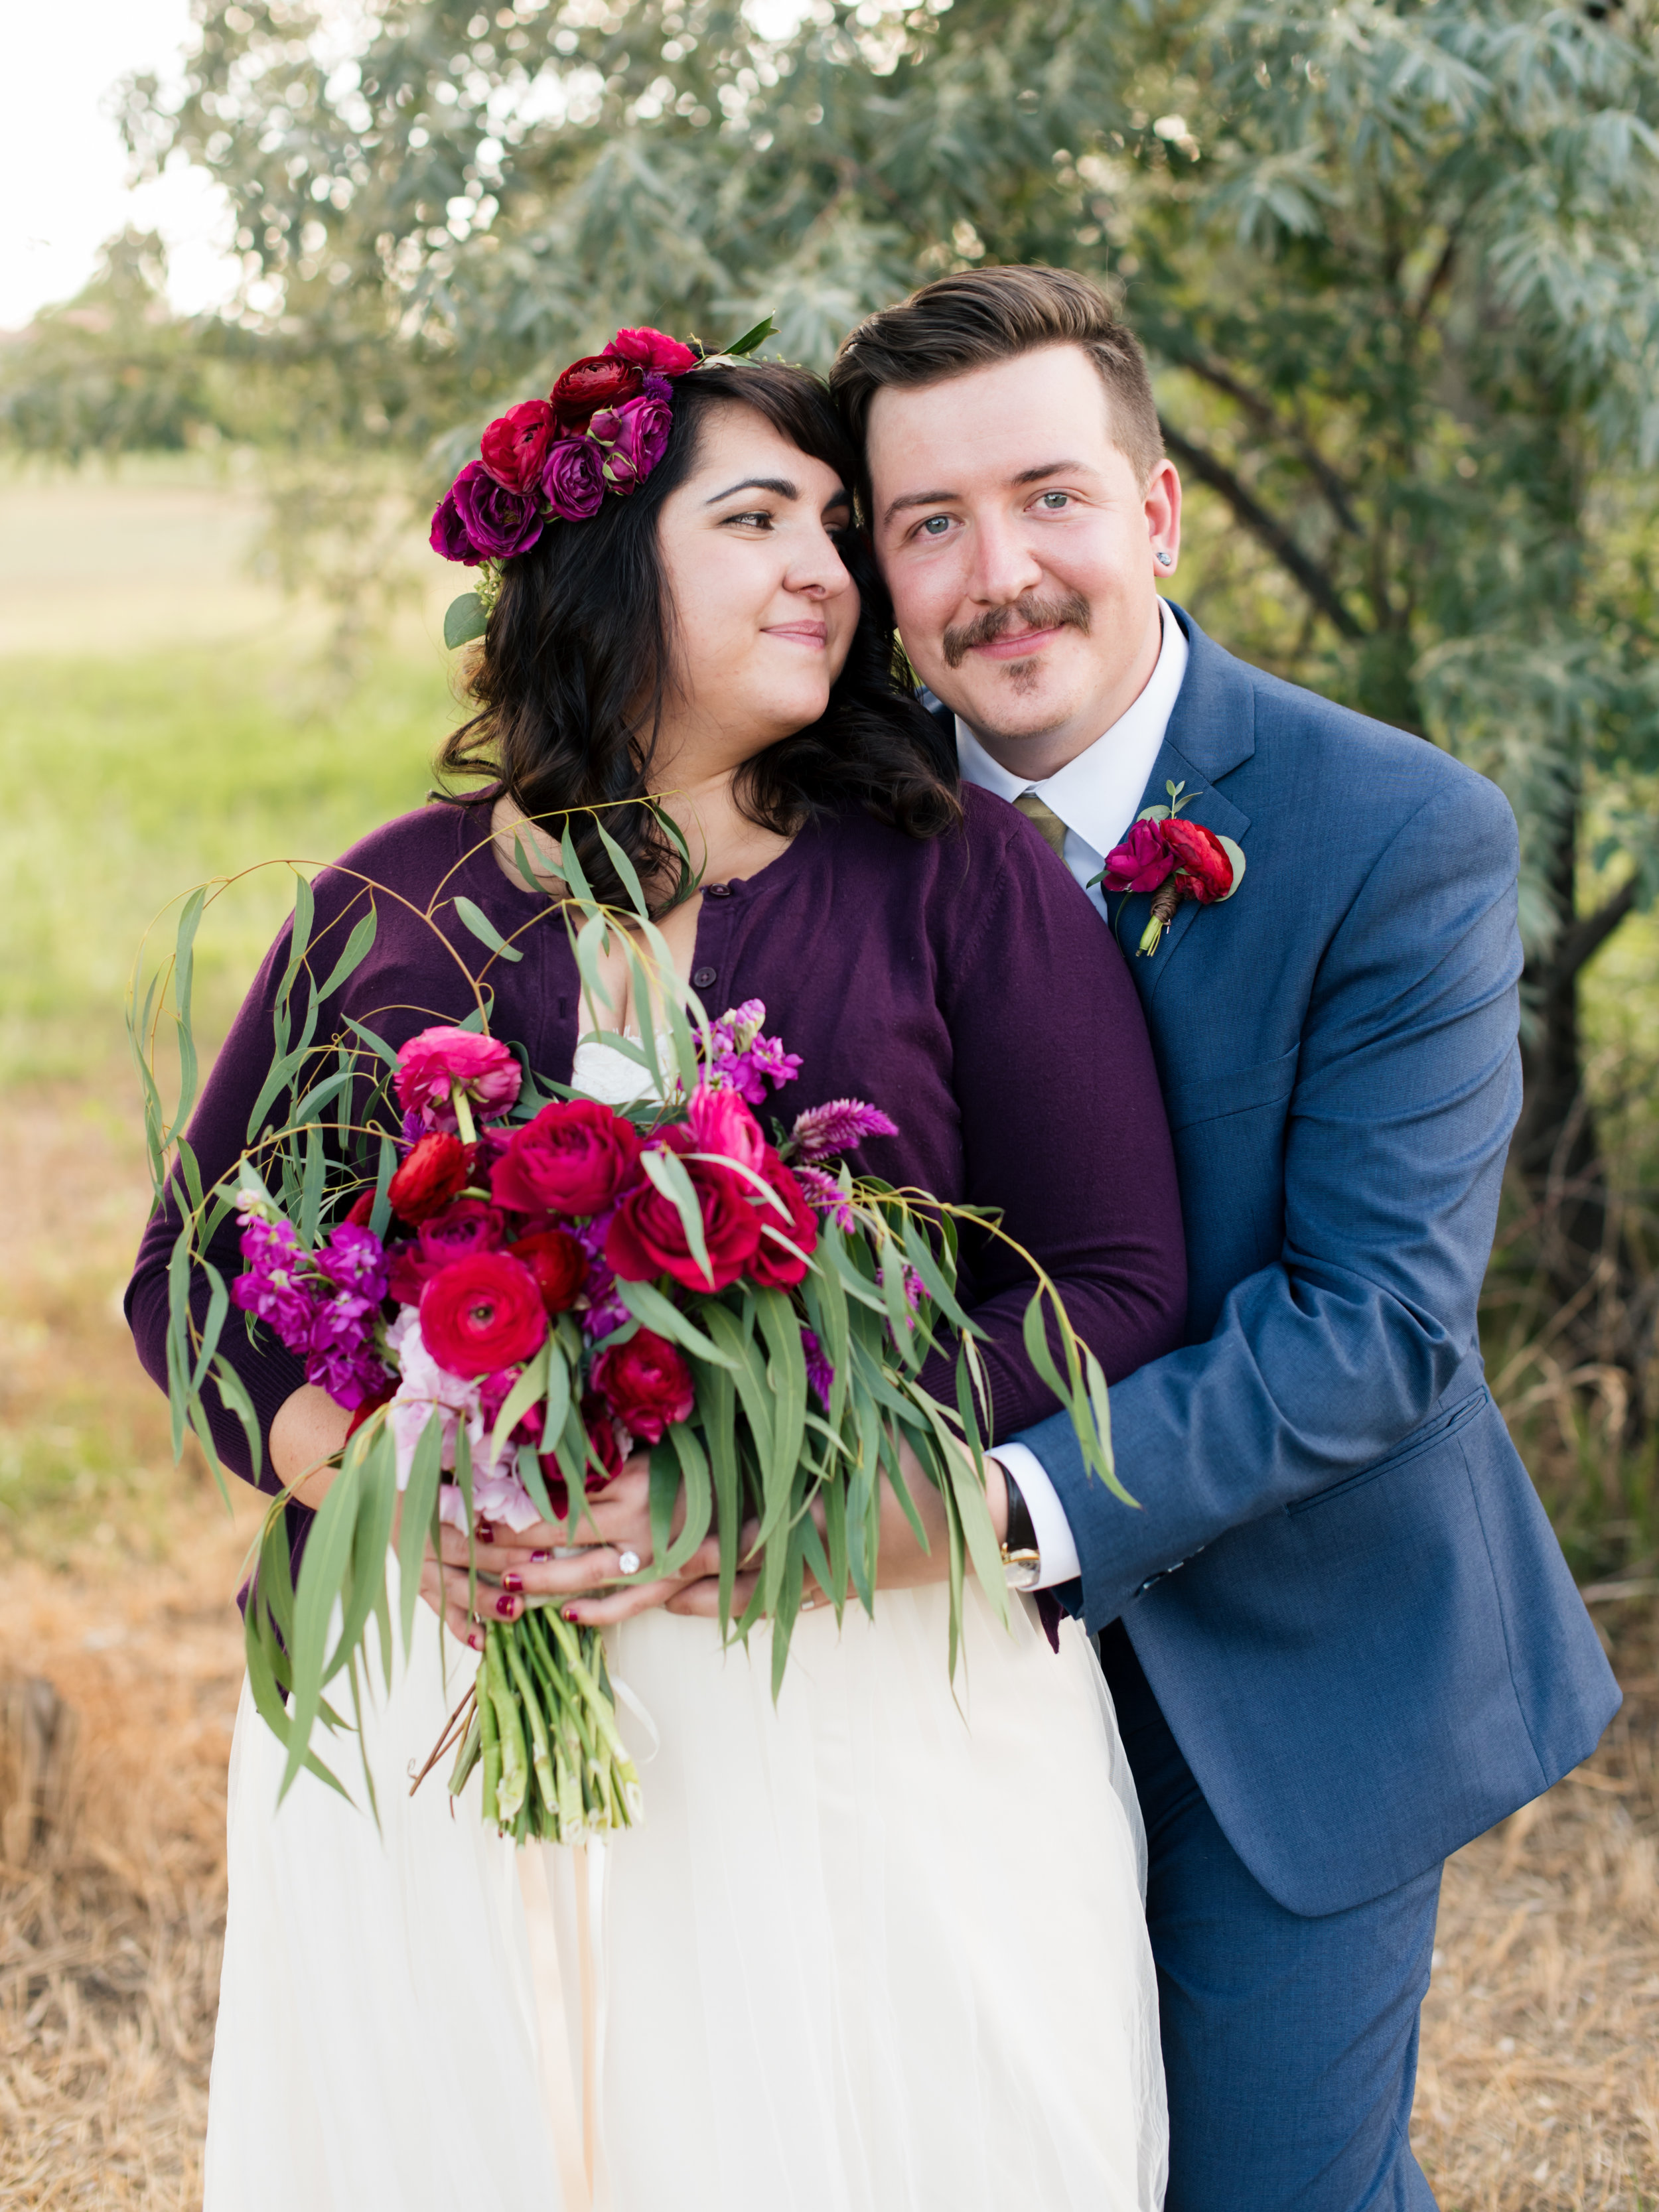 Flowers by Lace and Lilies, Flower Crown, Halo, Vibrant Pink Bridal Bouquet, Boutonniere, Bride and Groom